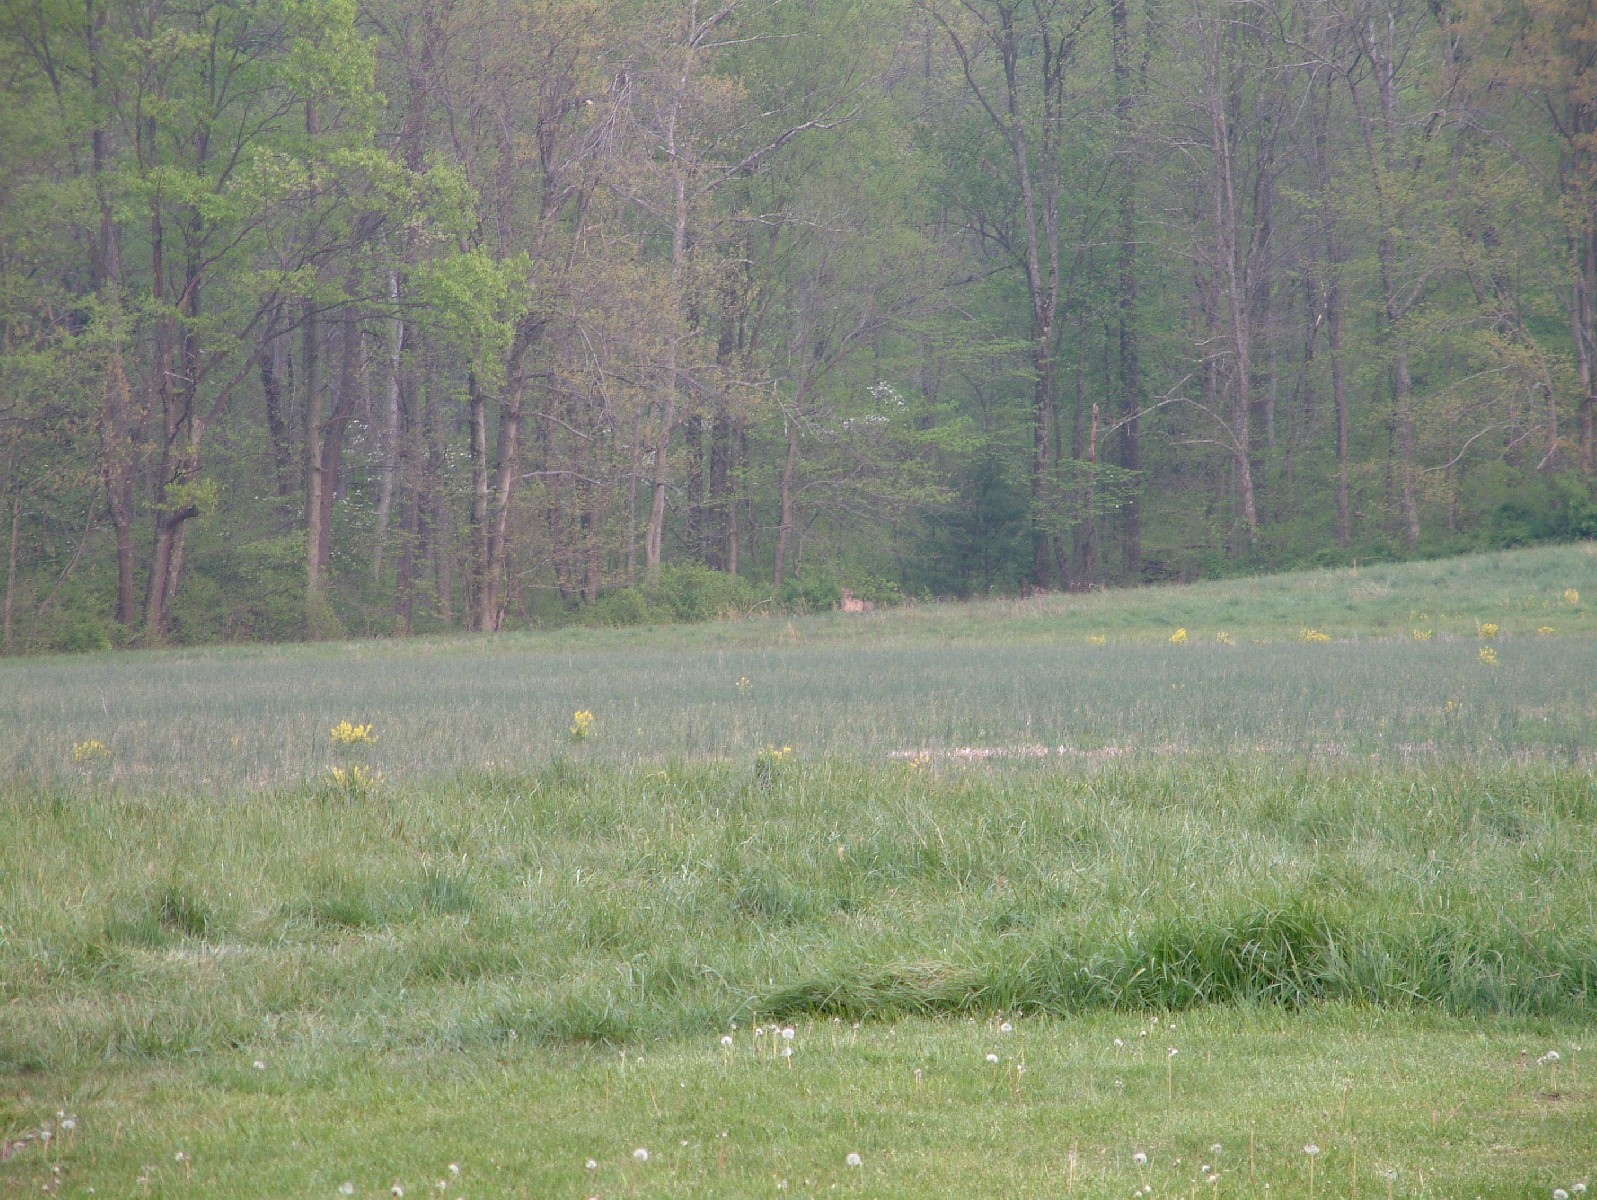 Deer in the distance